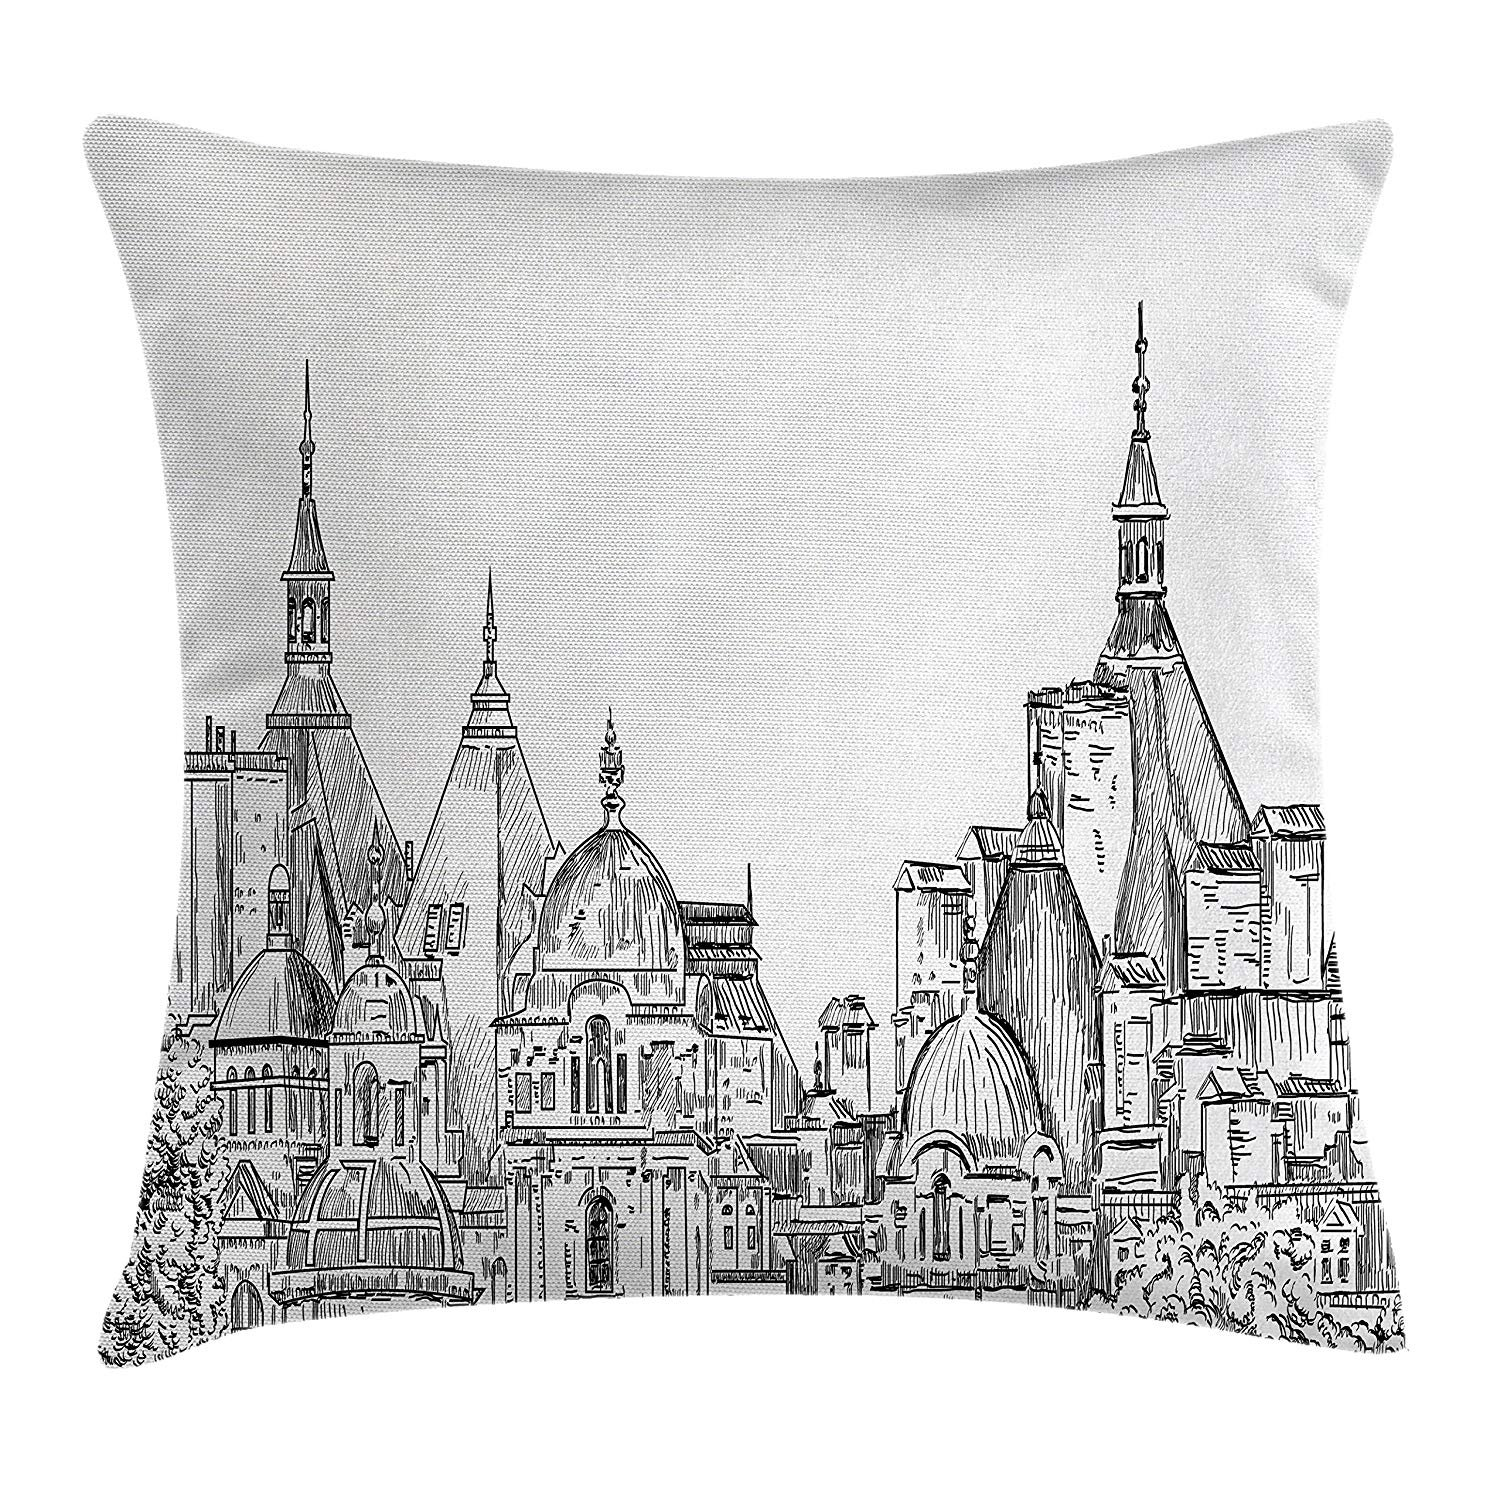 Modern Decor Throw Pillow Cushion Cover, European City Landscape Sketchy Artistic Painting Landsmarks Image, Decorative Square Accent Pillow Case, 18 X 18 inches, Black White WCMBY